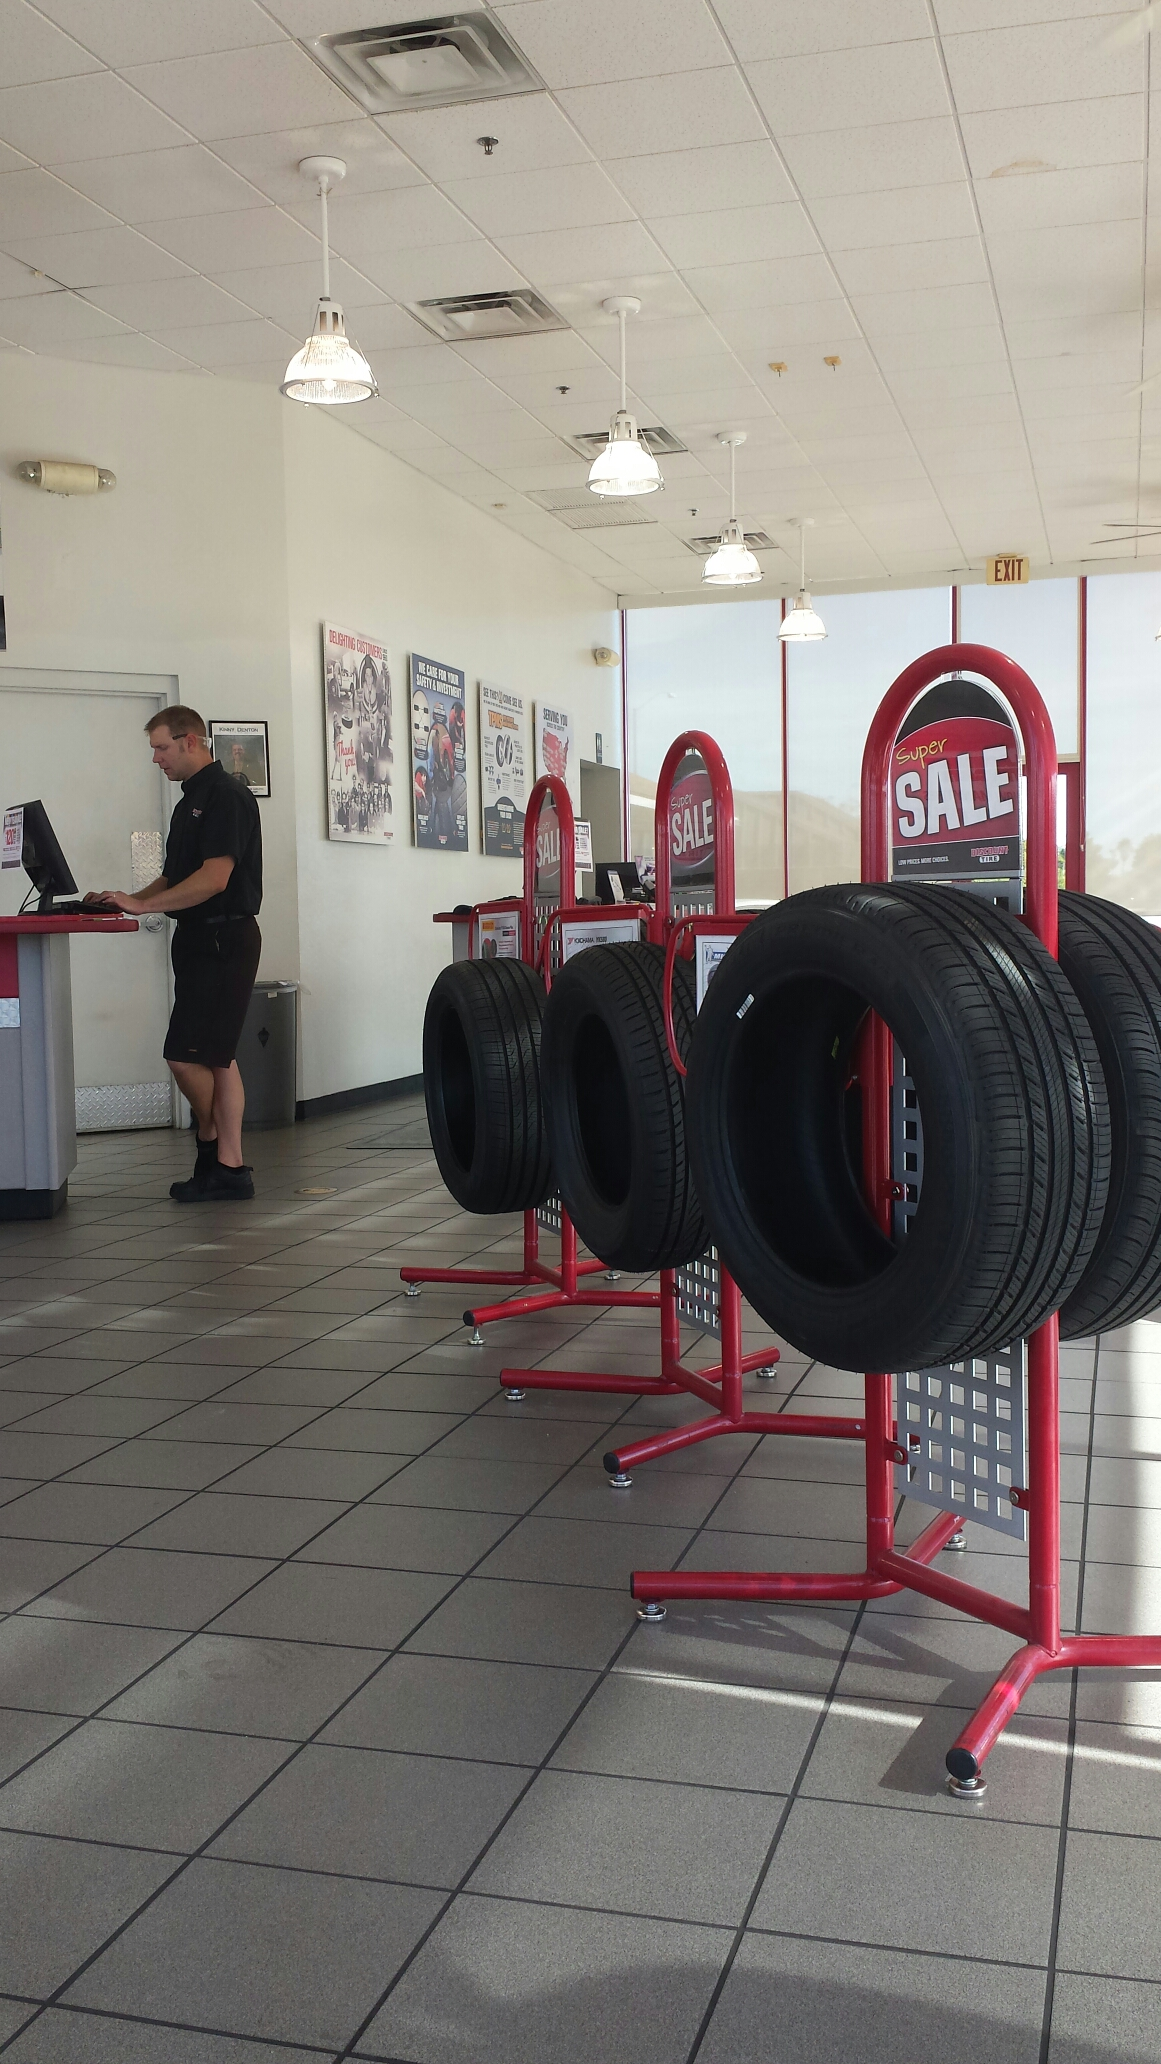 Phoenix, AZ - Getting new tires for the sales truck.